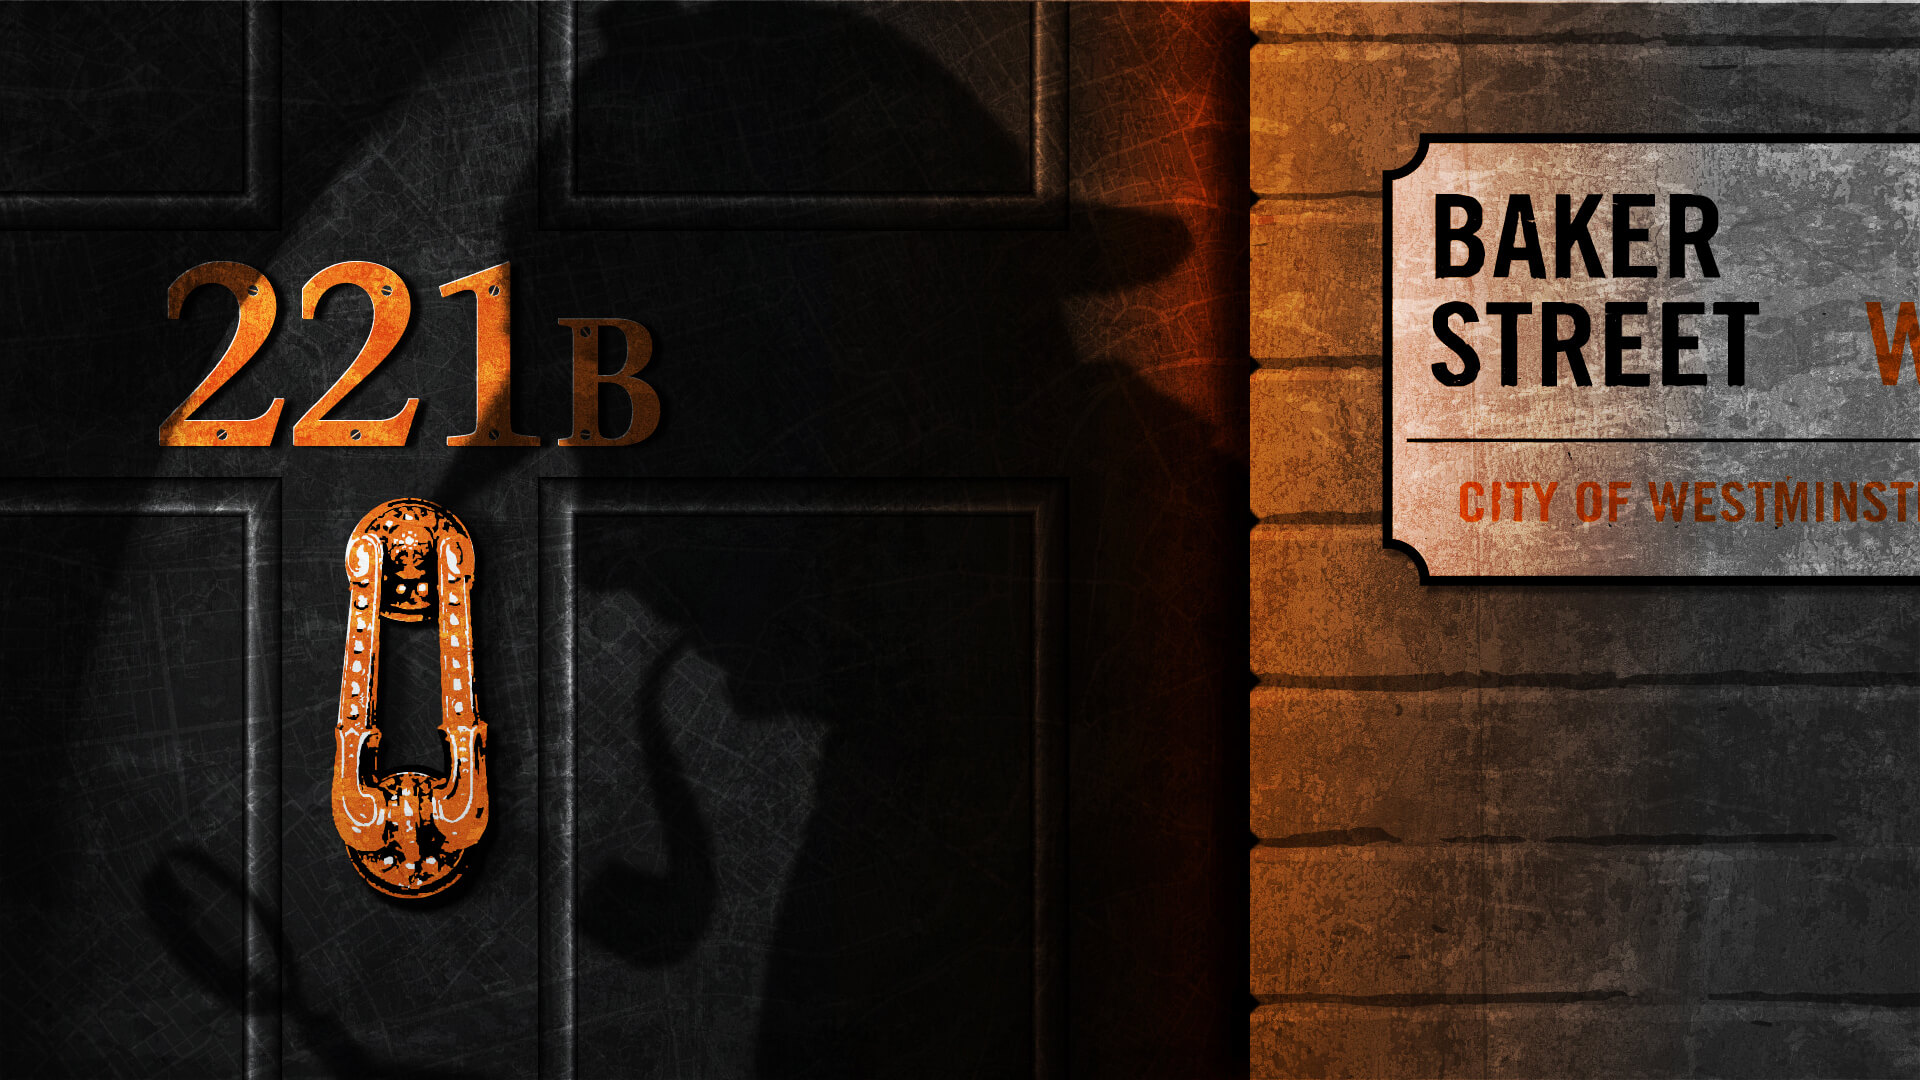 221B Baker Street - Our Sherlock themed escape room will offer an interesting challenge for new and returning players alike.Having been enlisted by Moriarty, your task is to break into 221B Baker Street, defeat the failsafes and retrieve an item of importance to Sherlock.Hurry though, Sherlock and Dr Watson are hot on your tail!